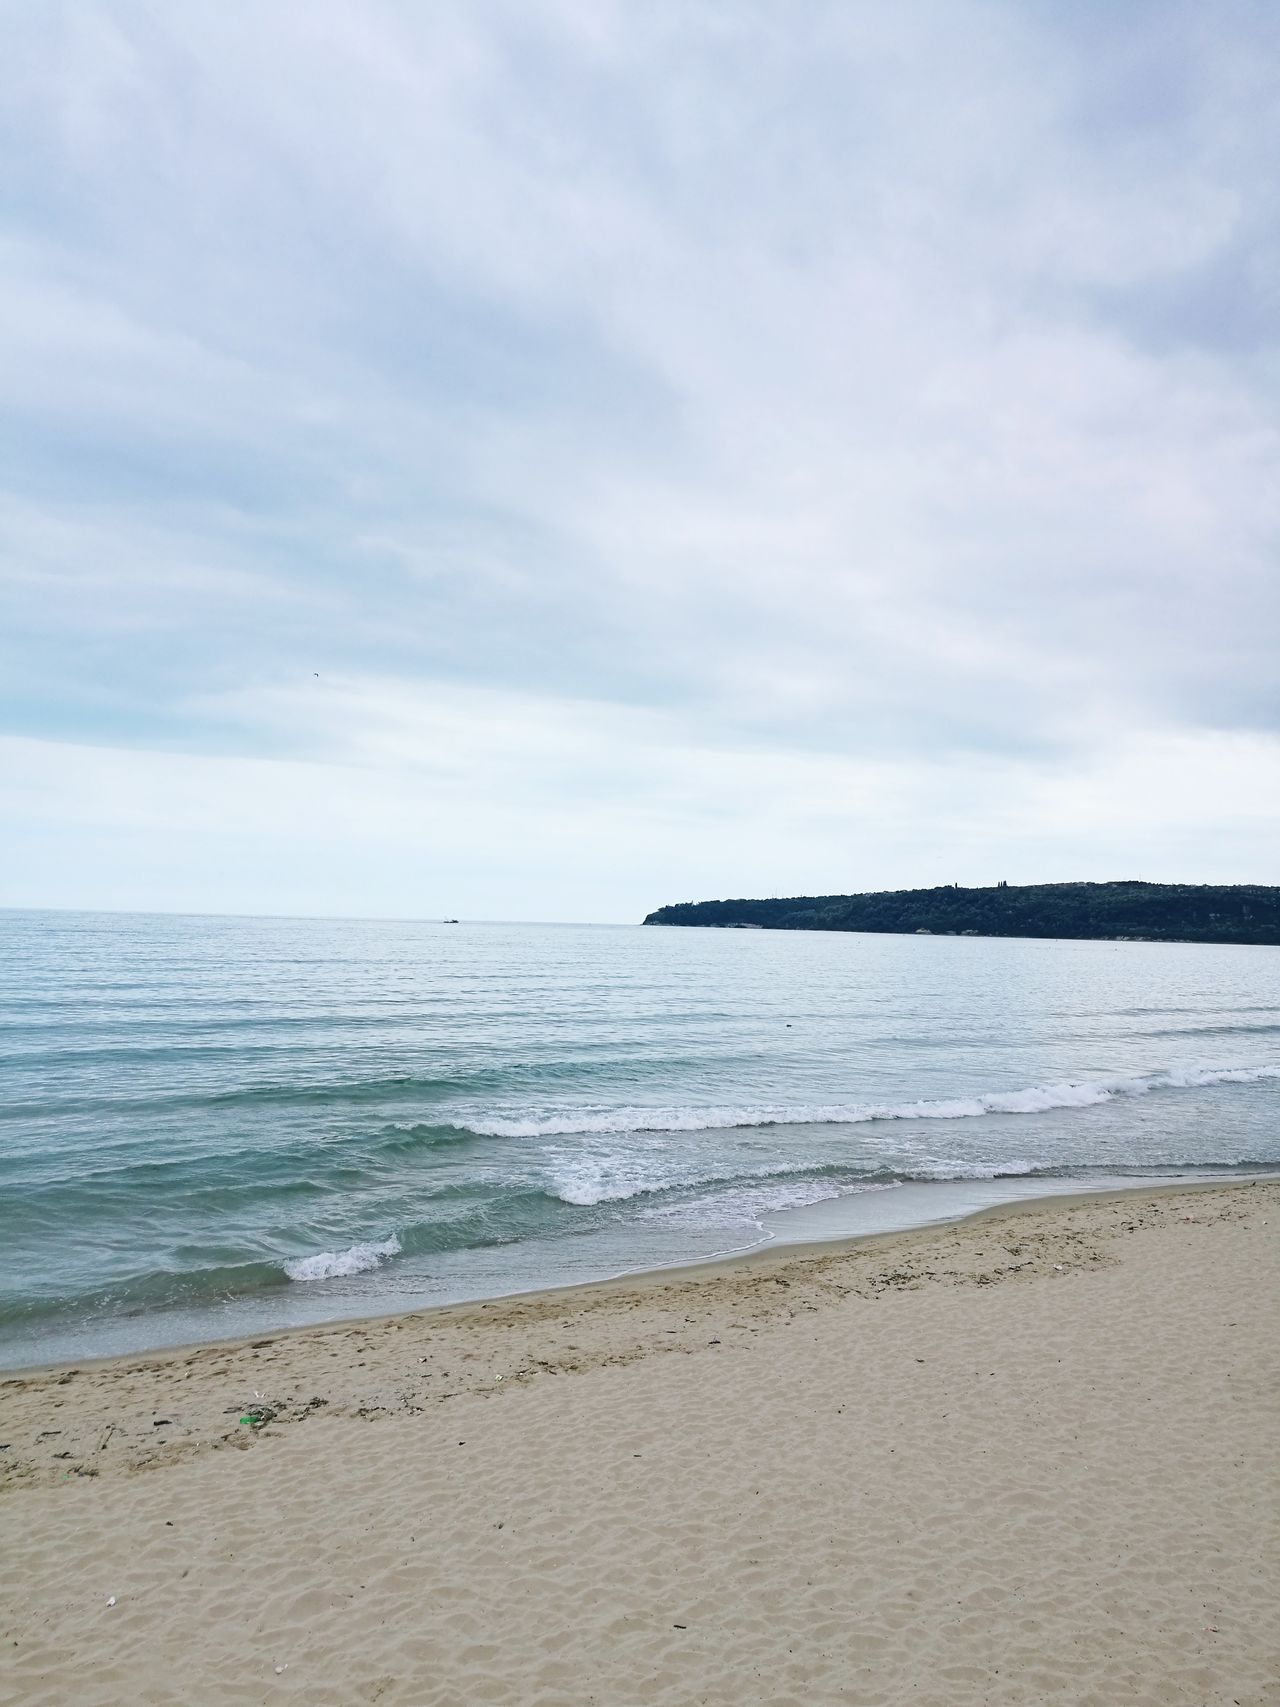 Beach Sea Sand Tranquil Scene Horizon Over Water Cloud - Sky Tranquility Landscape Scenics Water's Edge Nature Beauty In Nature Idyllic Coastal Feature Vacations Water Tourism Travel Destinations Outdoors Travel